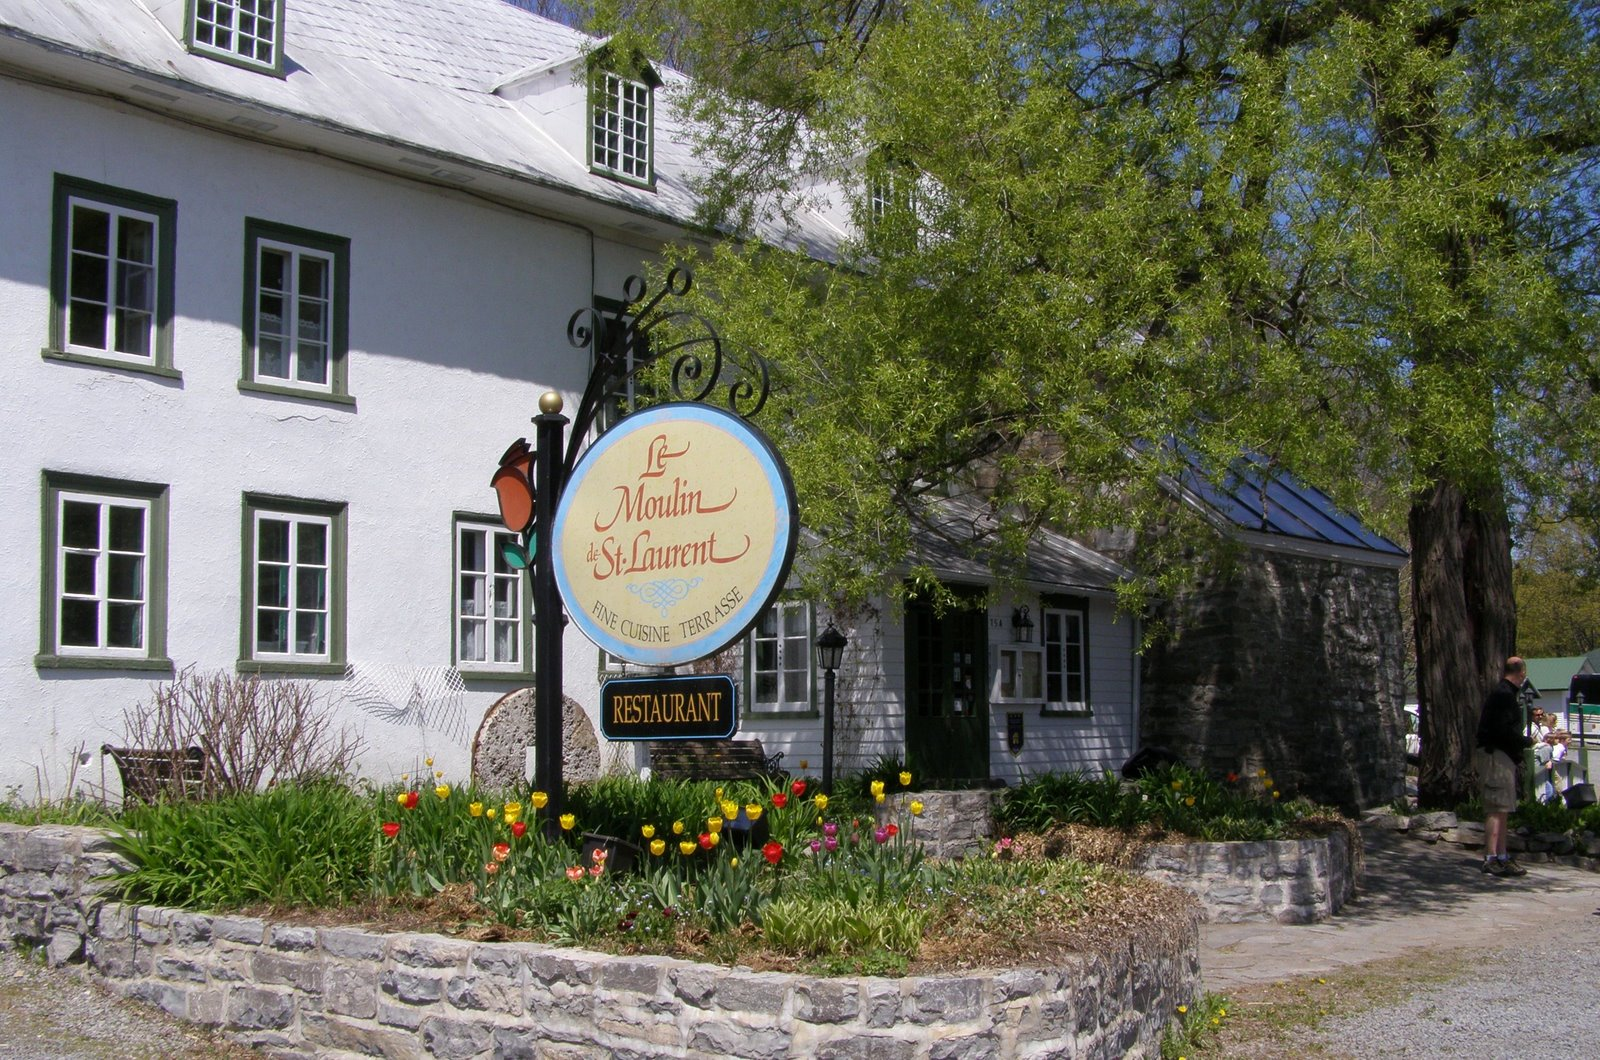 la moulin de st-laurent